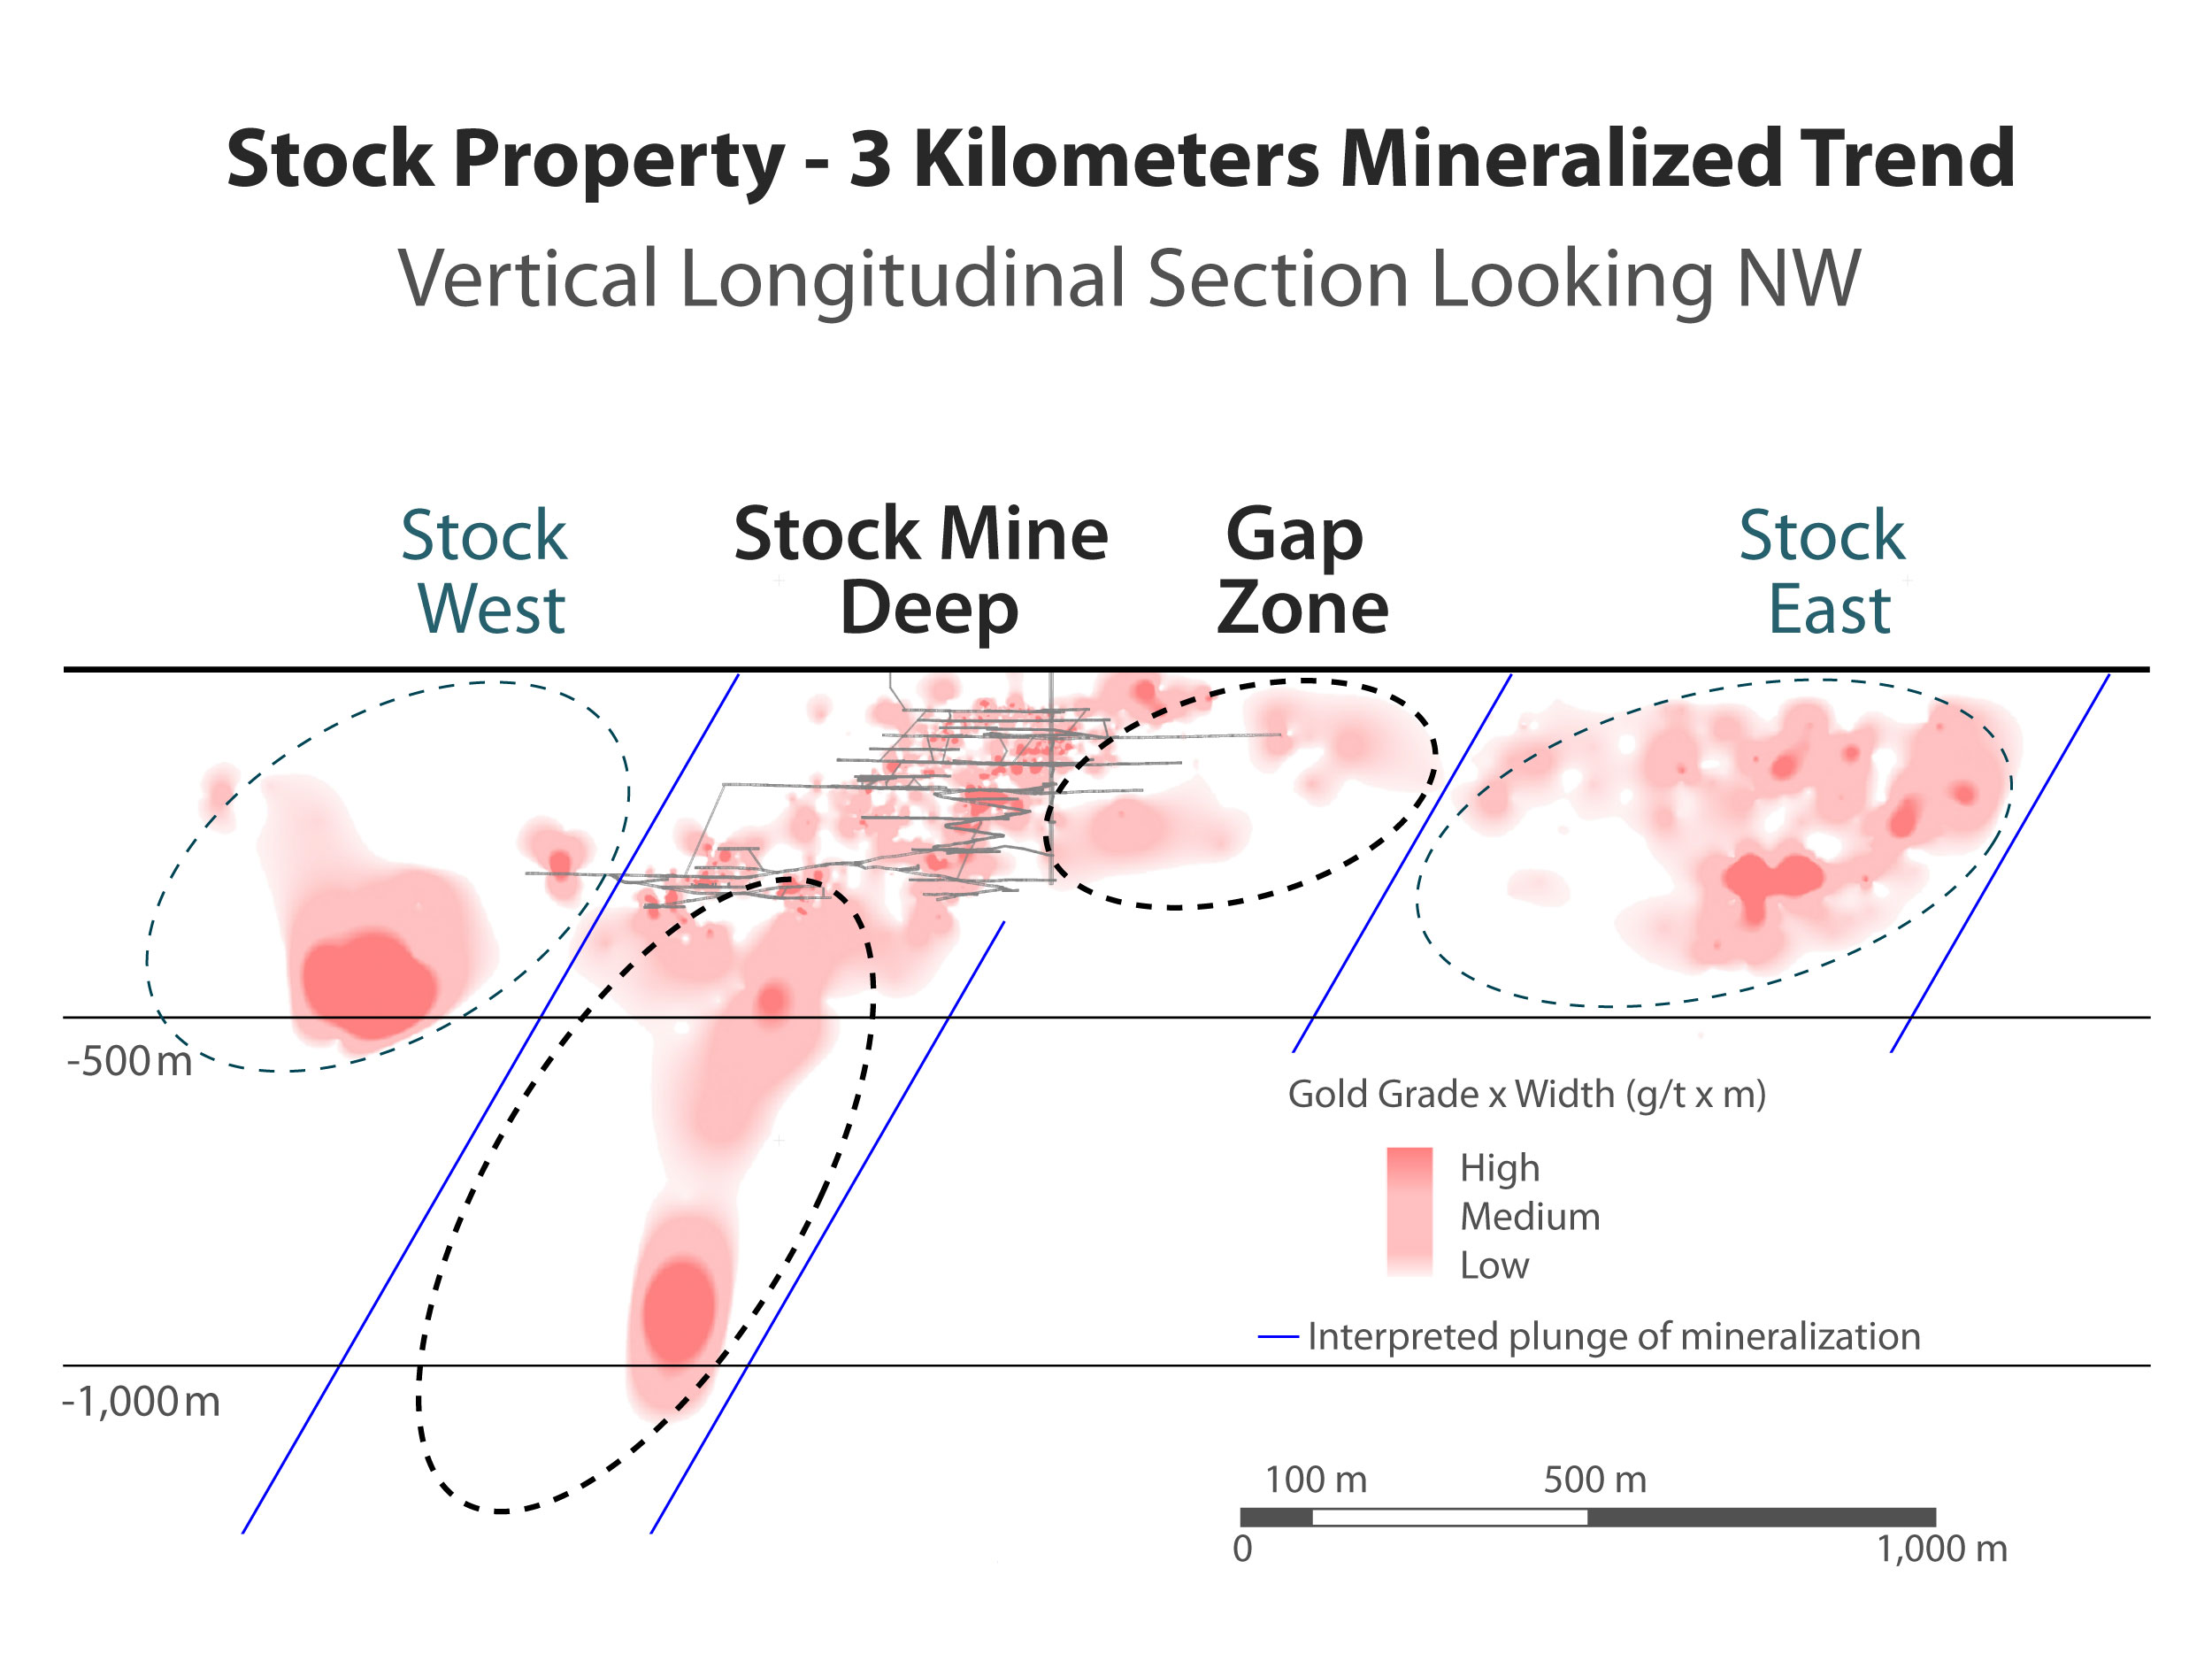 Stock Mine and Gap